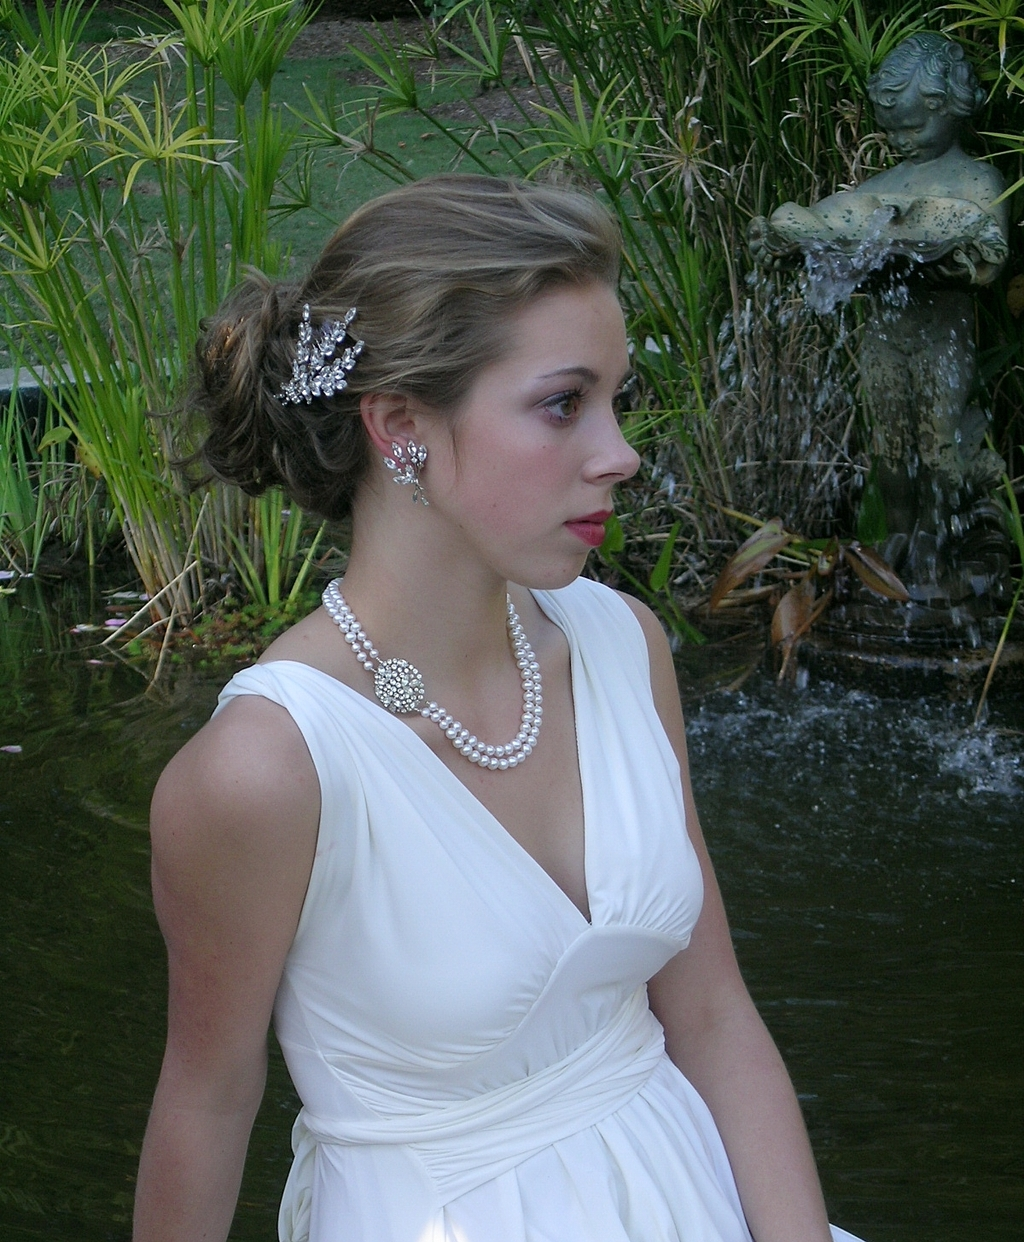 Belcanto-new-shop-vintage-bridal-jewelry-accessories-two-strand-pearls-vintage-hair-comb.full